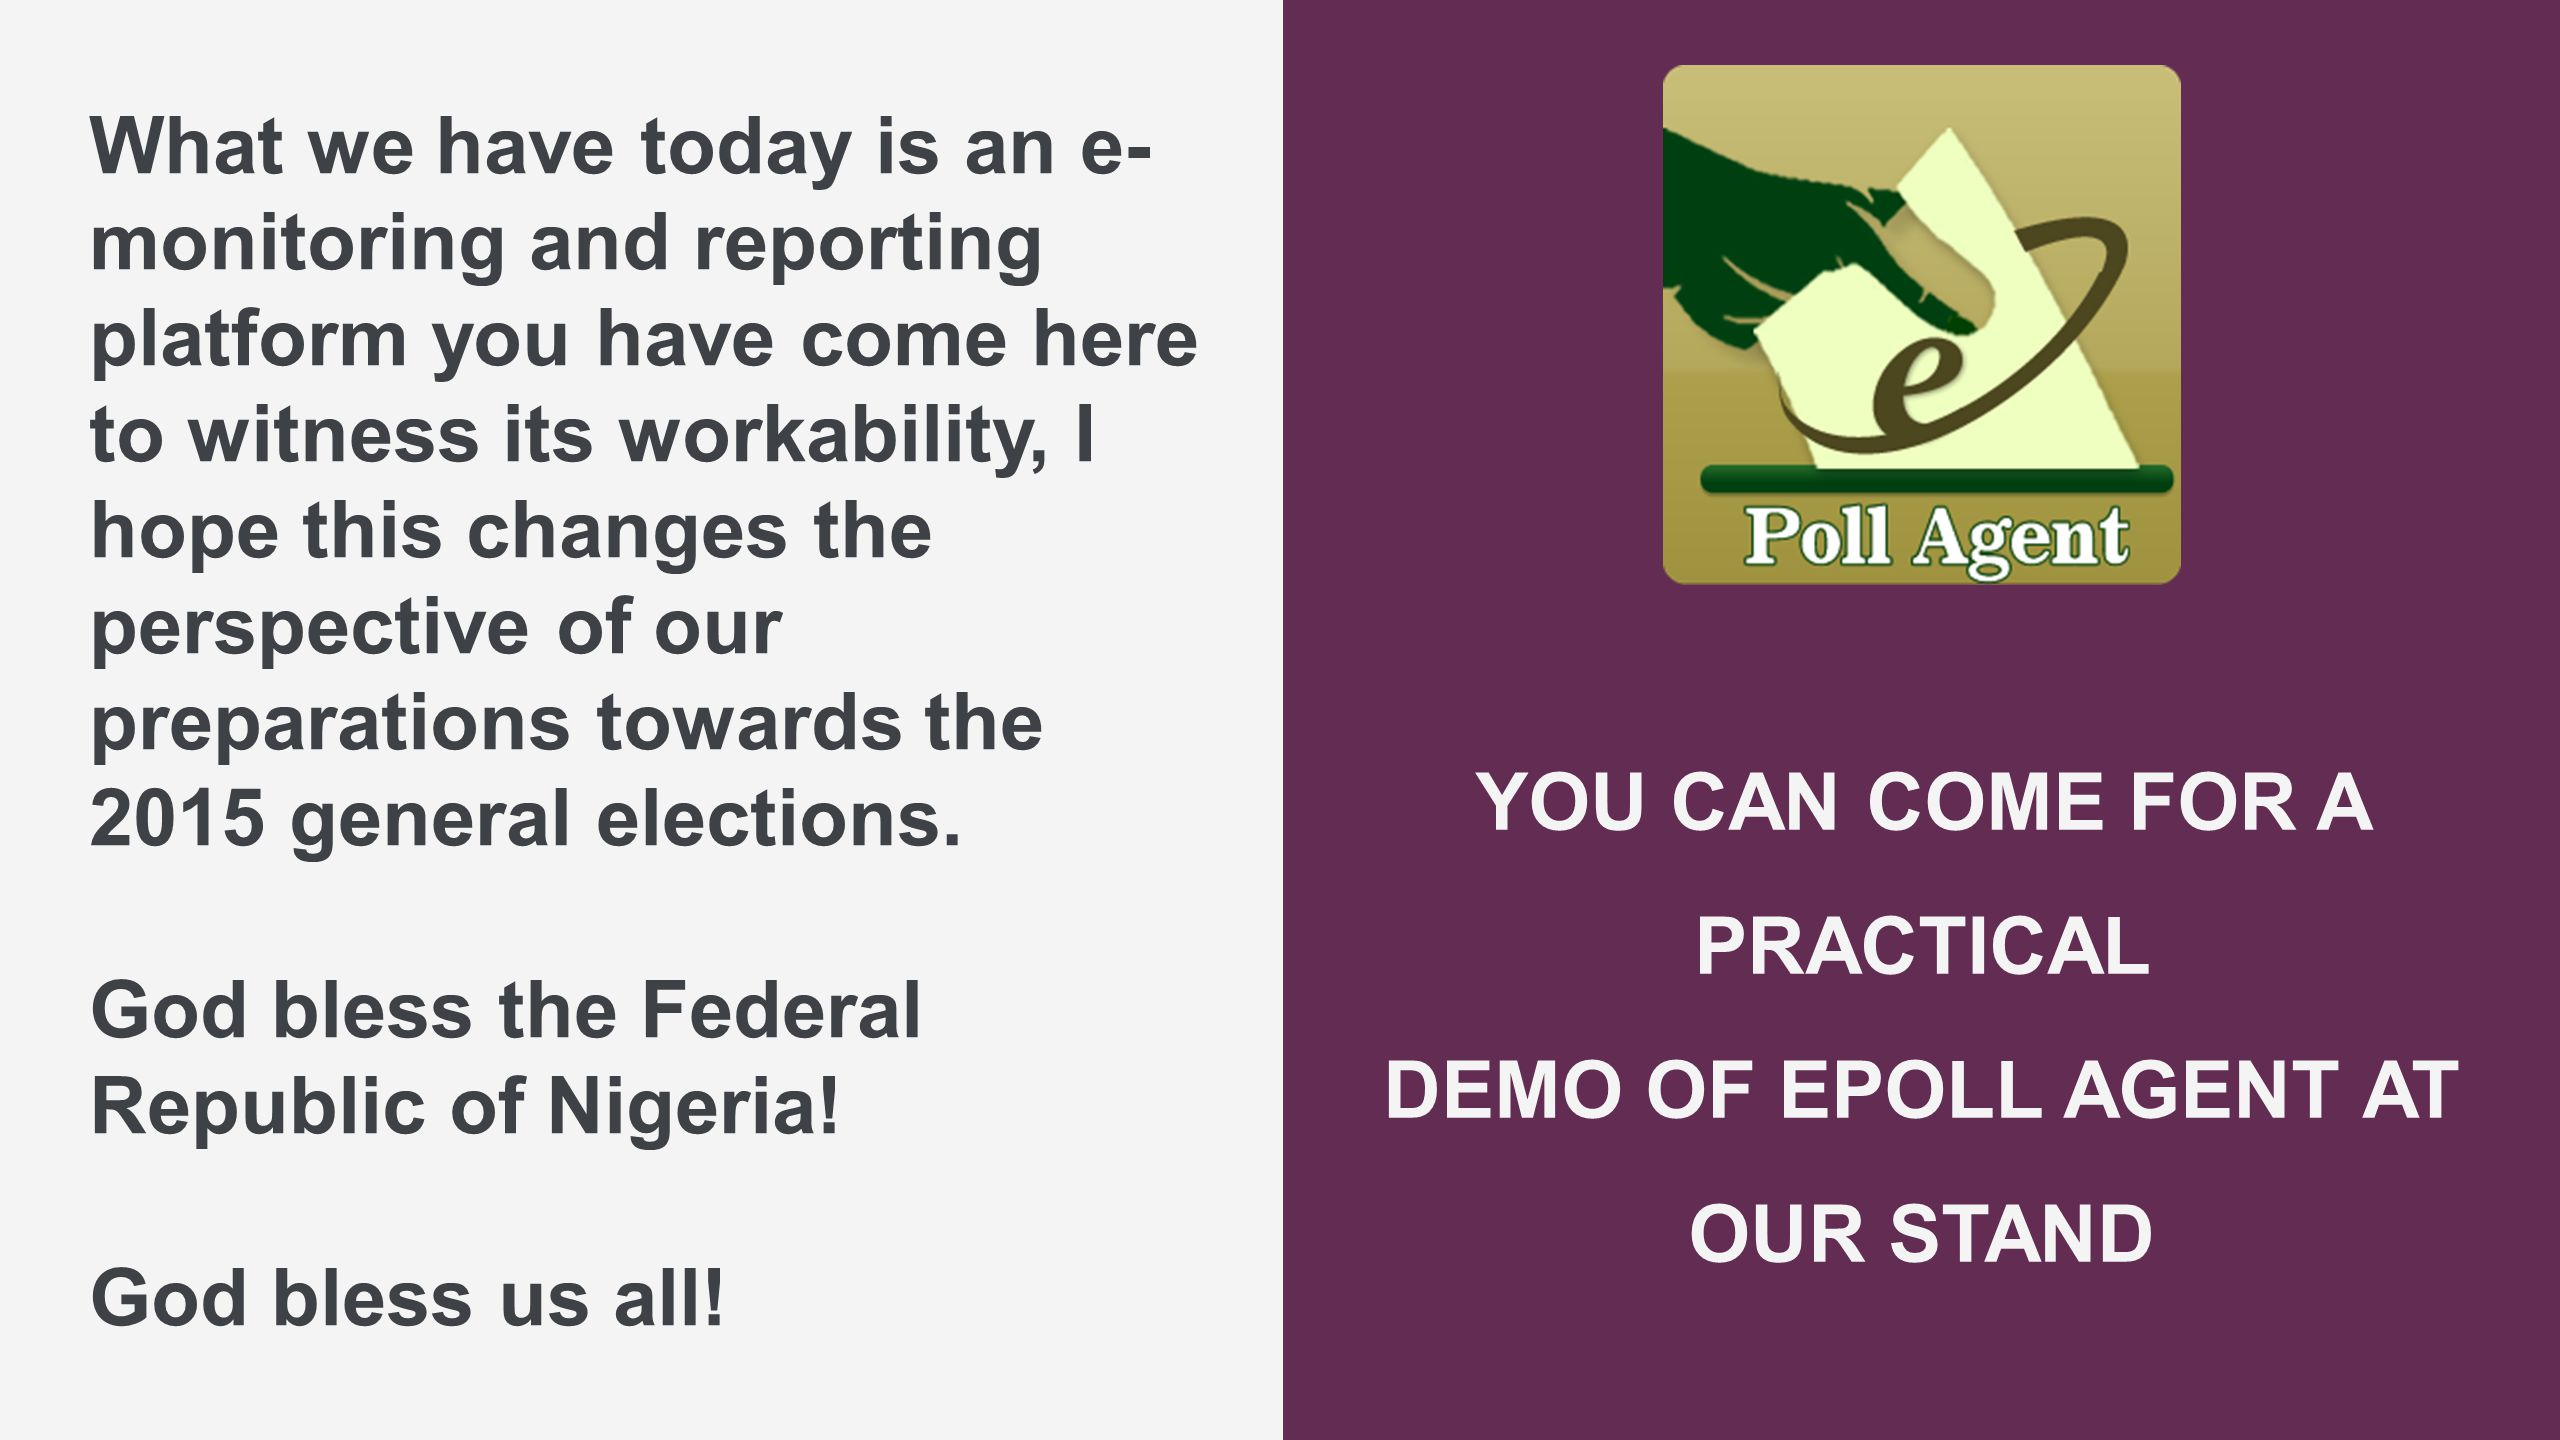 What we have today is an e- monitoring and reporting platform you have come here to witness its workability, I hope this changes the perspective of our preparations towards the 2015 general elections.